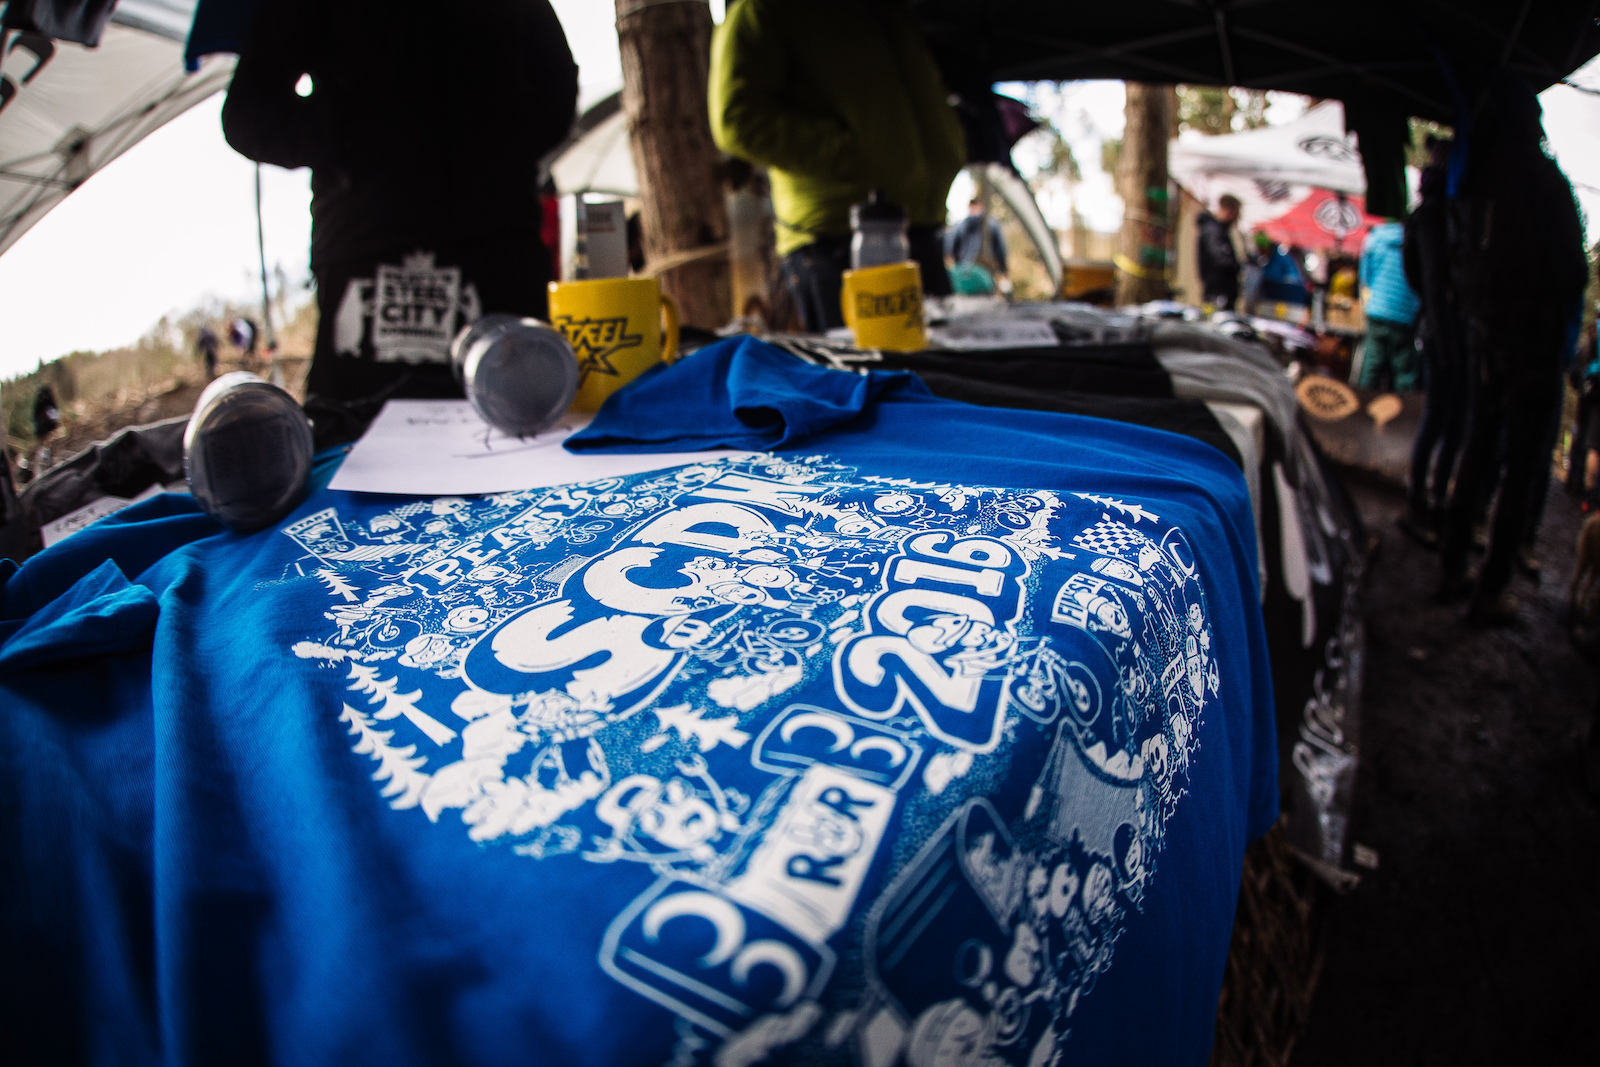 Steel City DH t-shirts were available to buy in blue blue or blue from the Ride Sheffield stall in the finish area. The awesome design is by Sheffield based company TADO. Last years design proved so appealing one racer had it tattooed on his leg